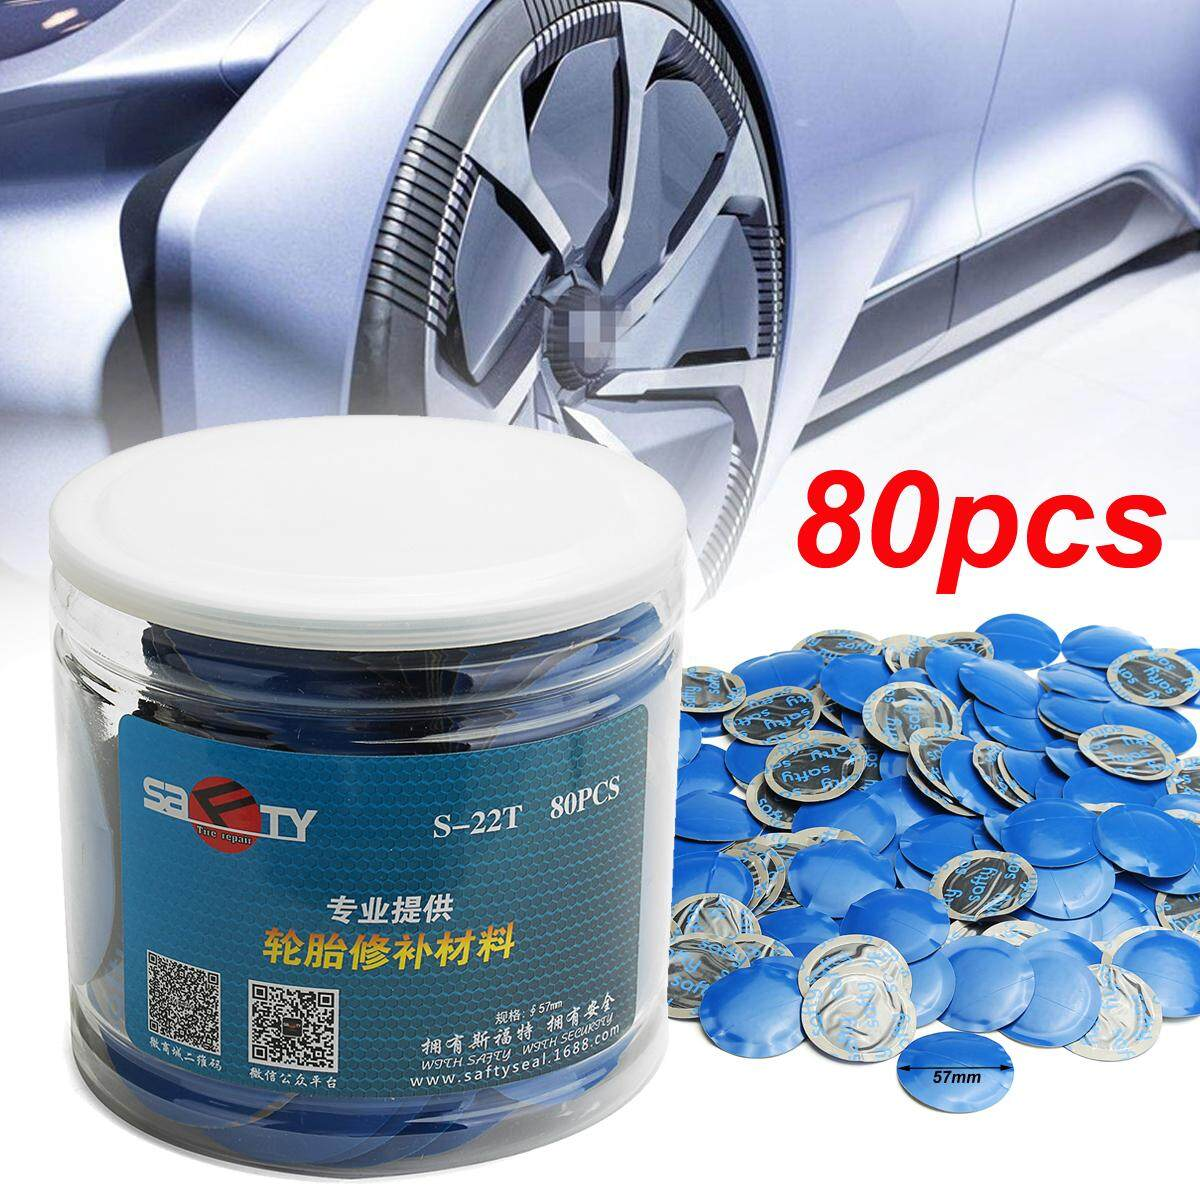 Universal 80pcs 57mm Natural Rubber Wired Tyre Puncture Repair Mushroom Patch By Audew.